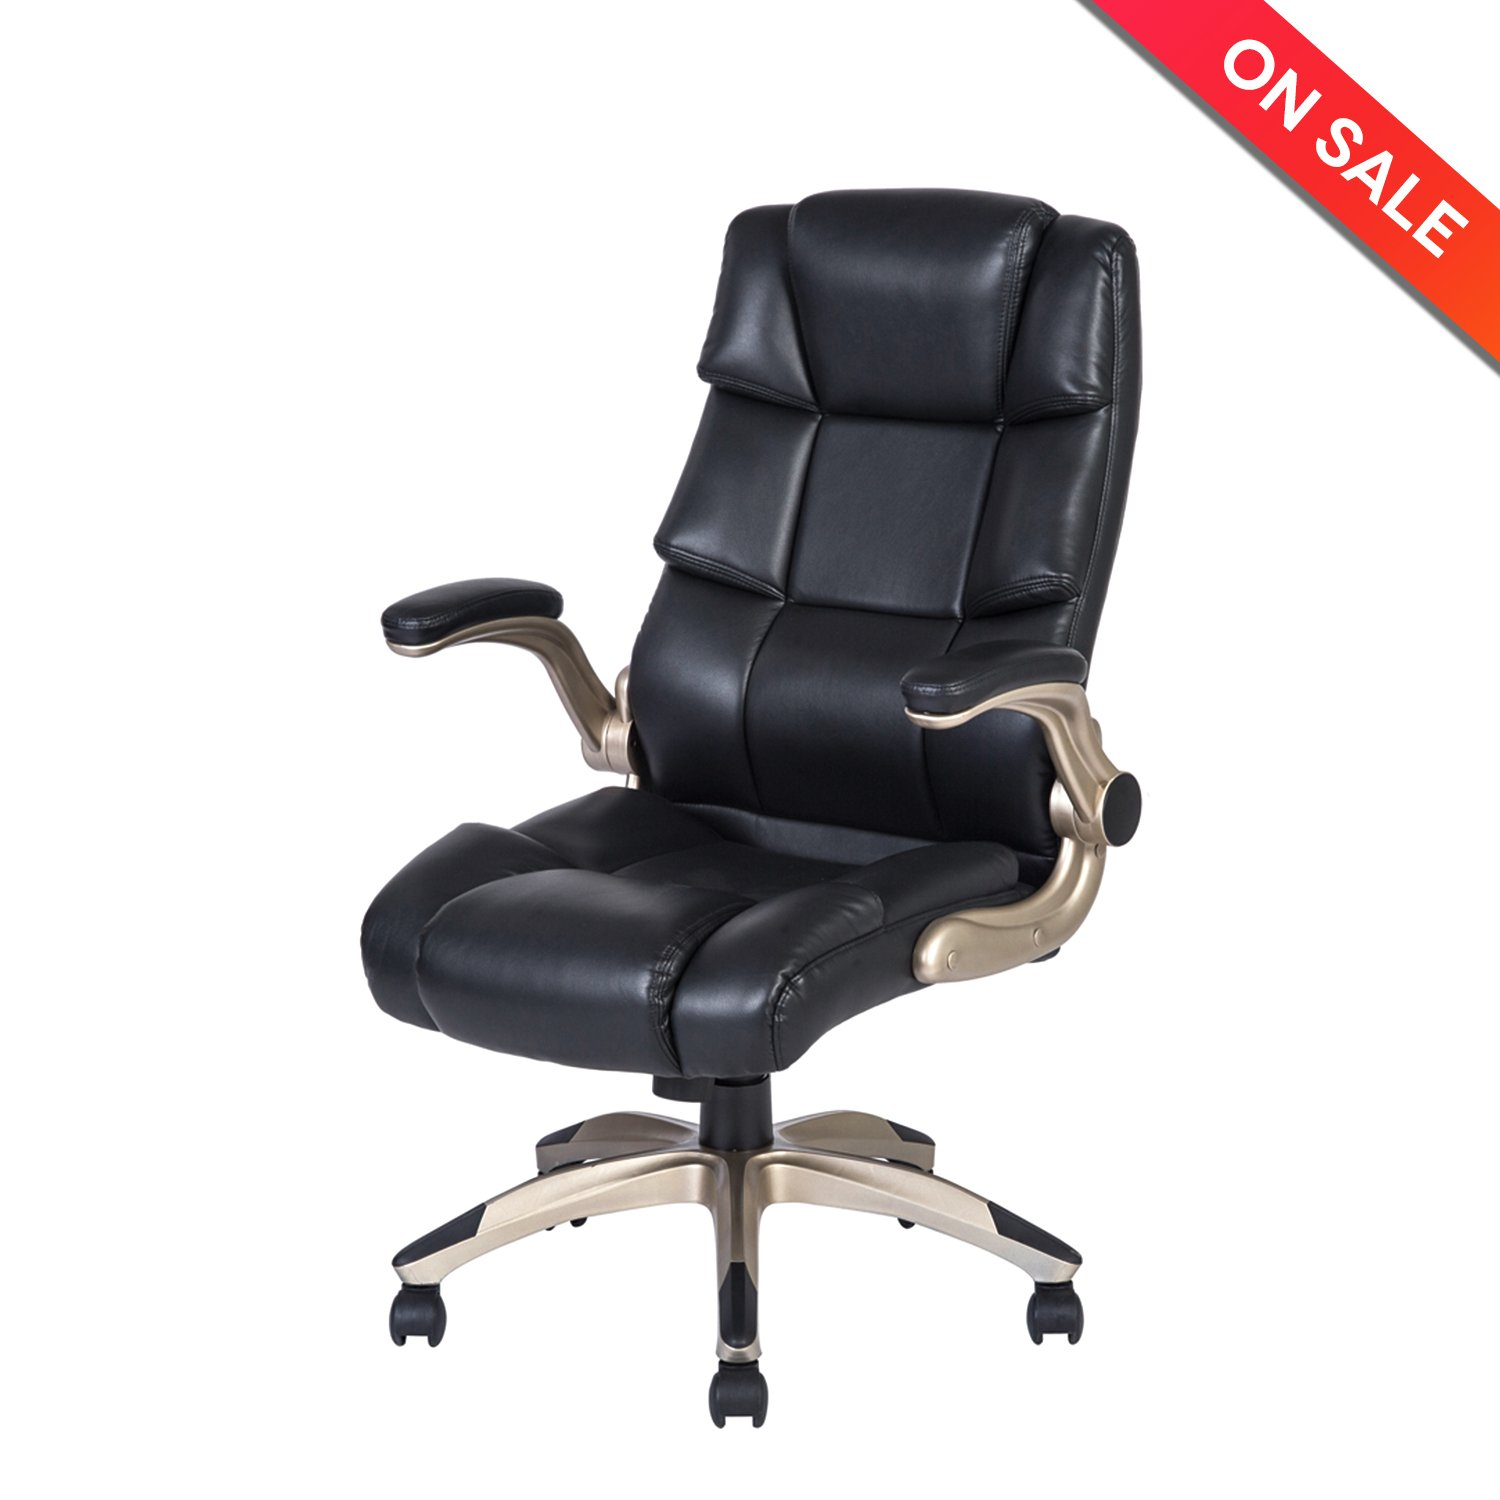 LCH Ergonomic High Back Leather Office Chair - Adjustable Padded Flip-Up Arms Executive Computer Desk Chair